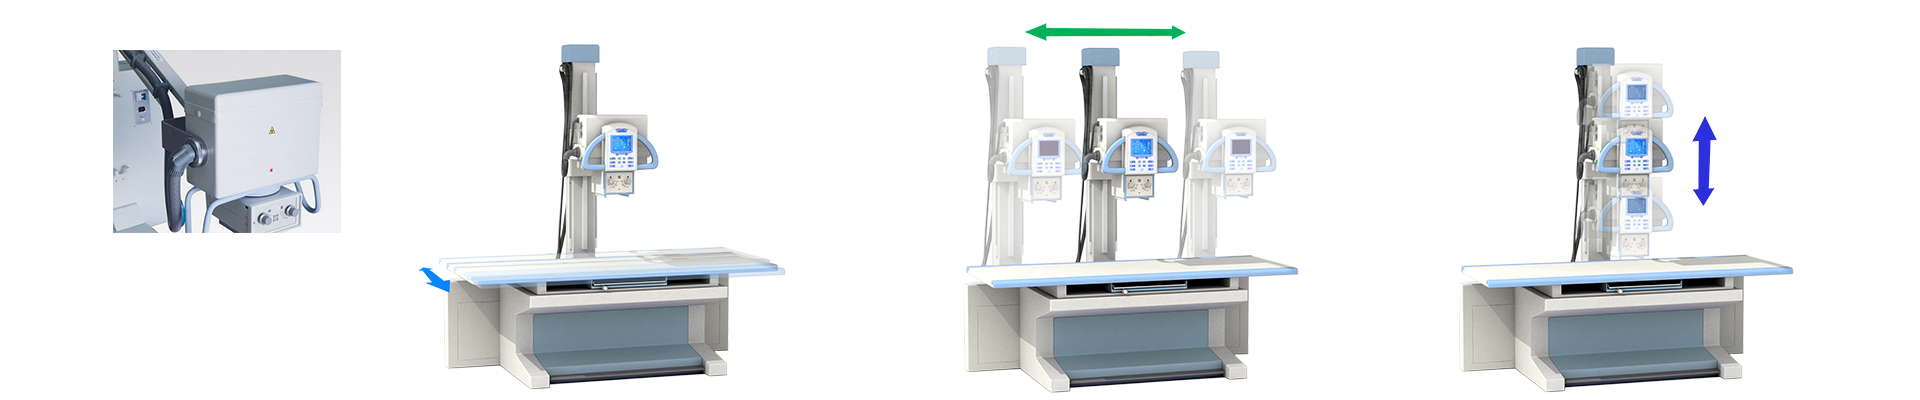 High Frequency X-ray Radiography System banner